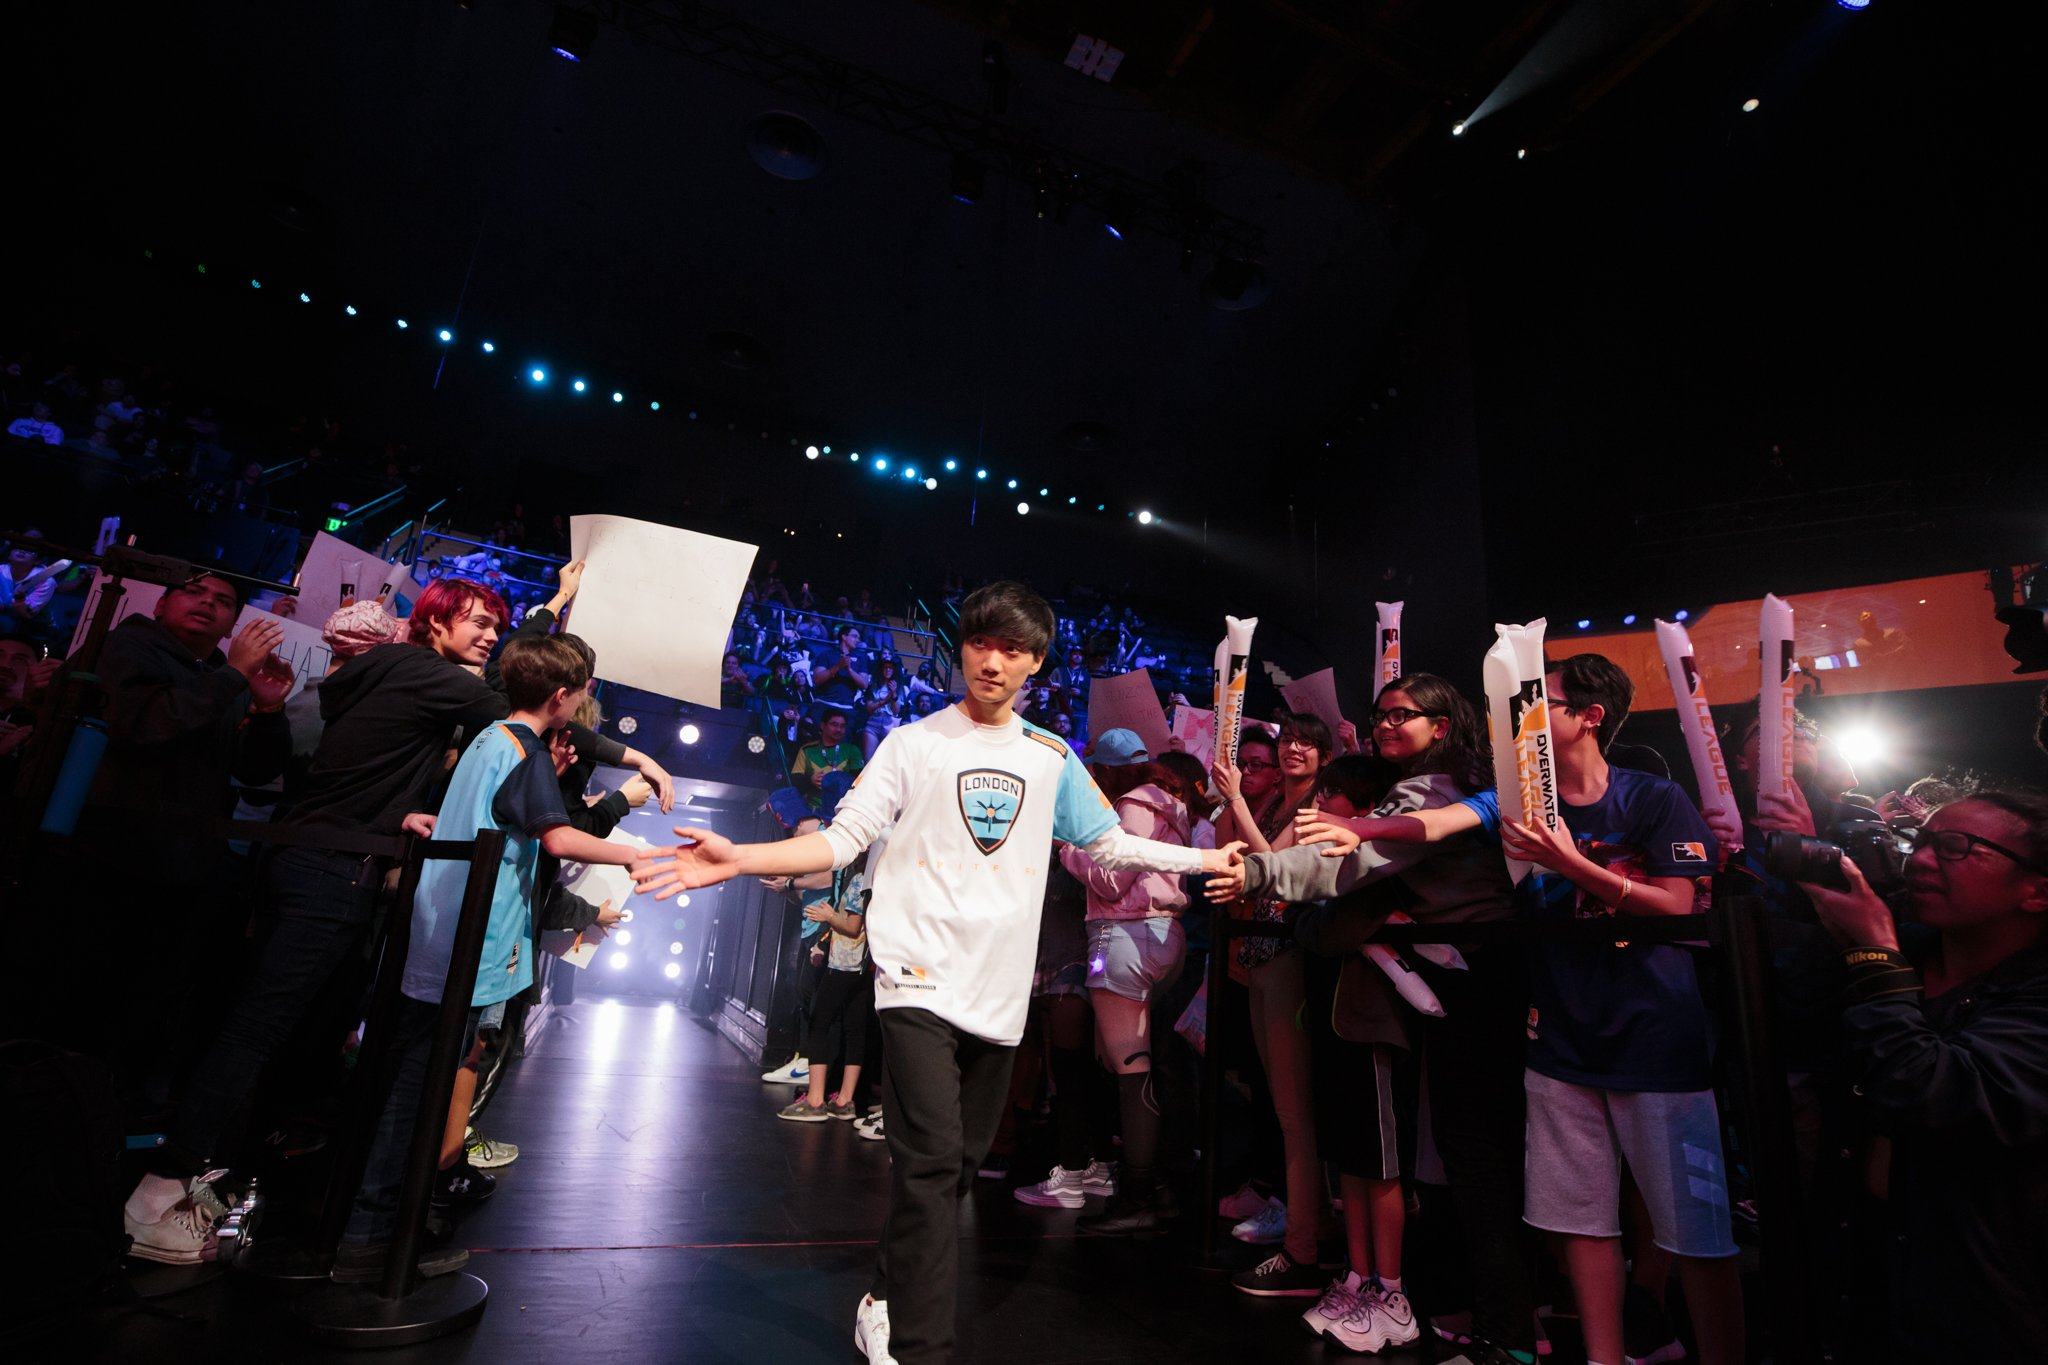 birdring entering the Overwatch League arena to a crowd of fans.